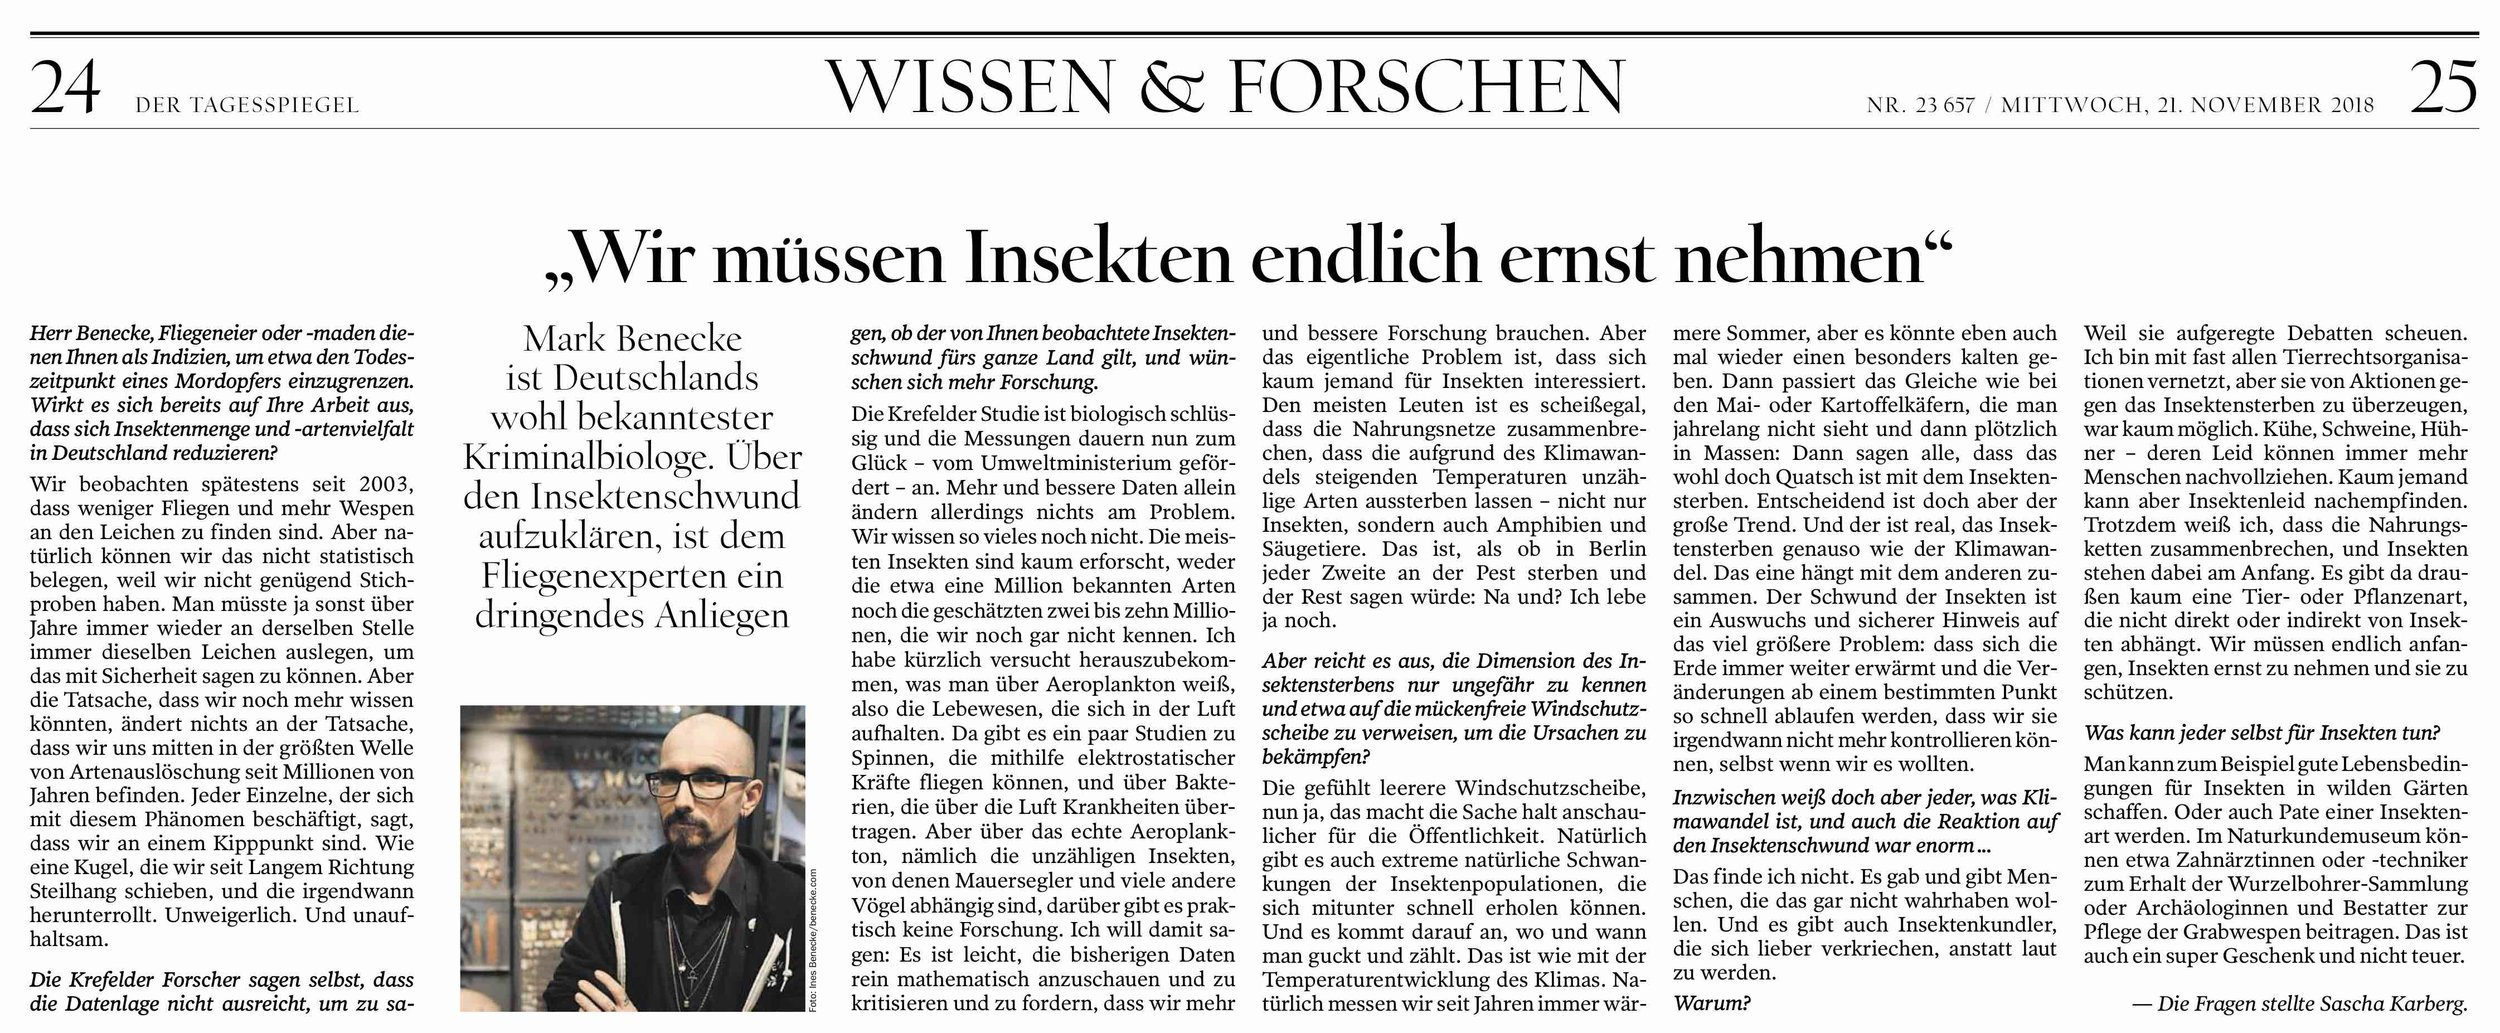 mark_benecke_insektensterben_tagesspiegel_berlin_interview_jpg.jpg